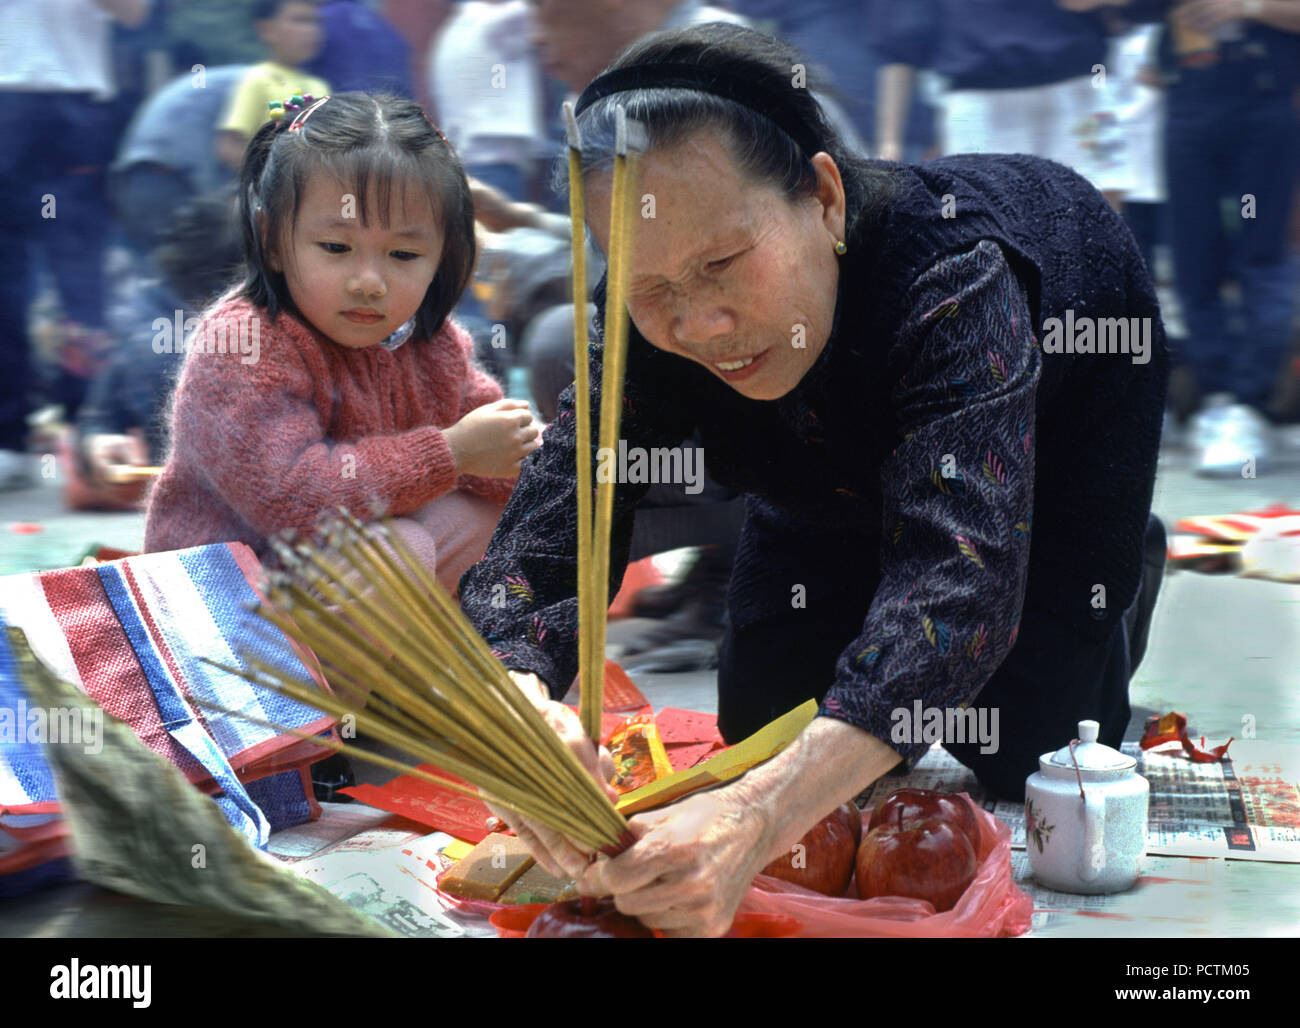 Woman and child doing rituals in Won tai Sin temple, Hongkong, China, Asia - Stock Image